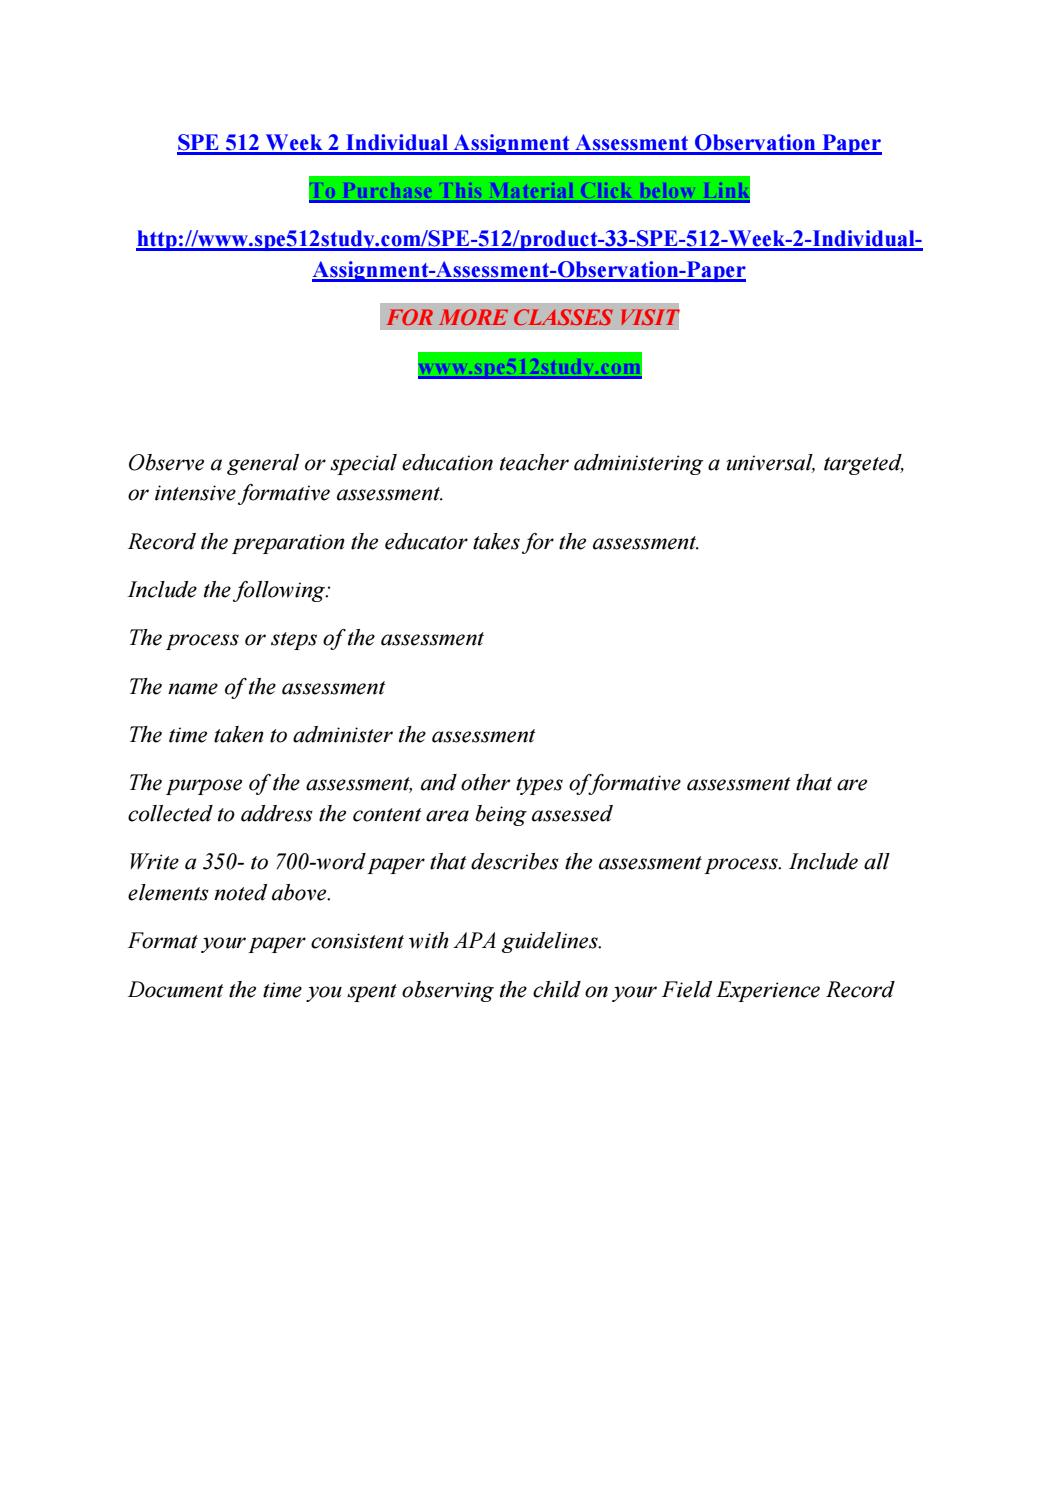 Spe 512 week 2 individual assignment assessment observation